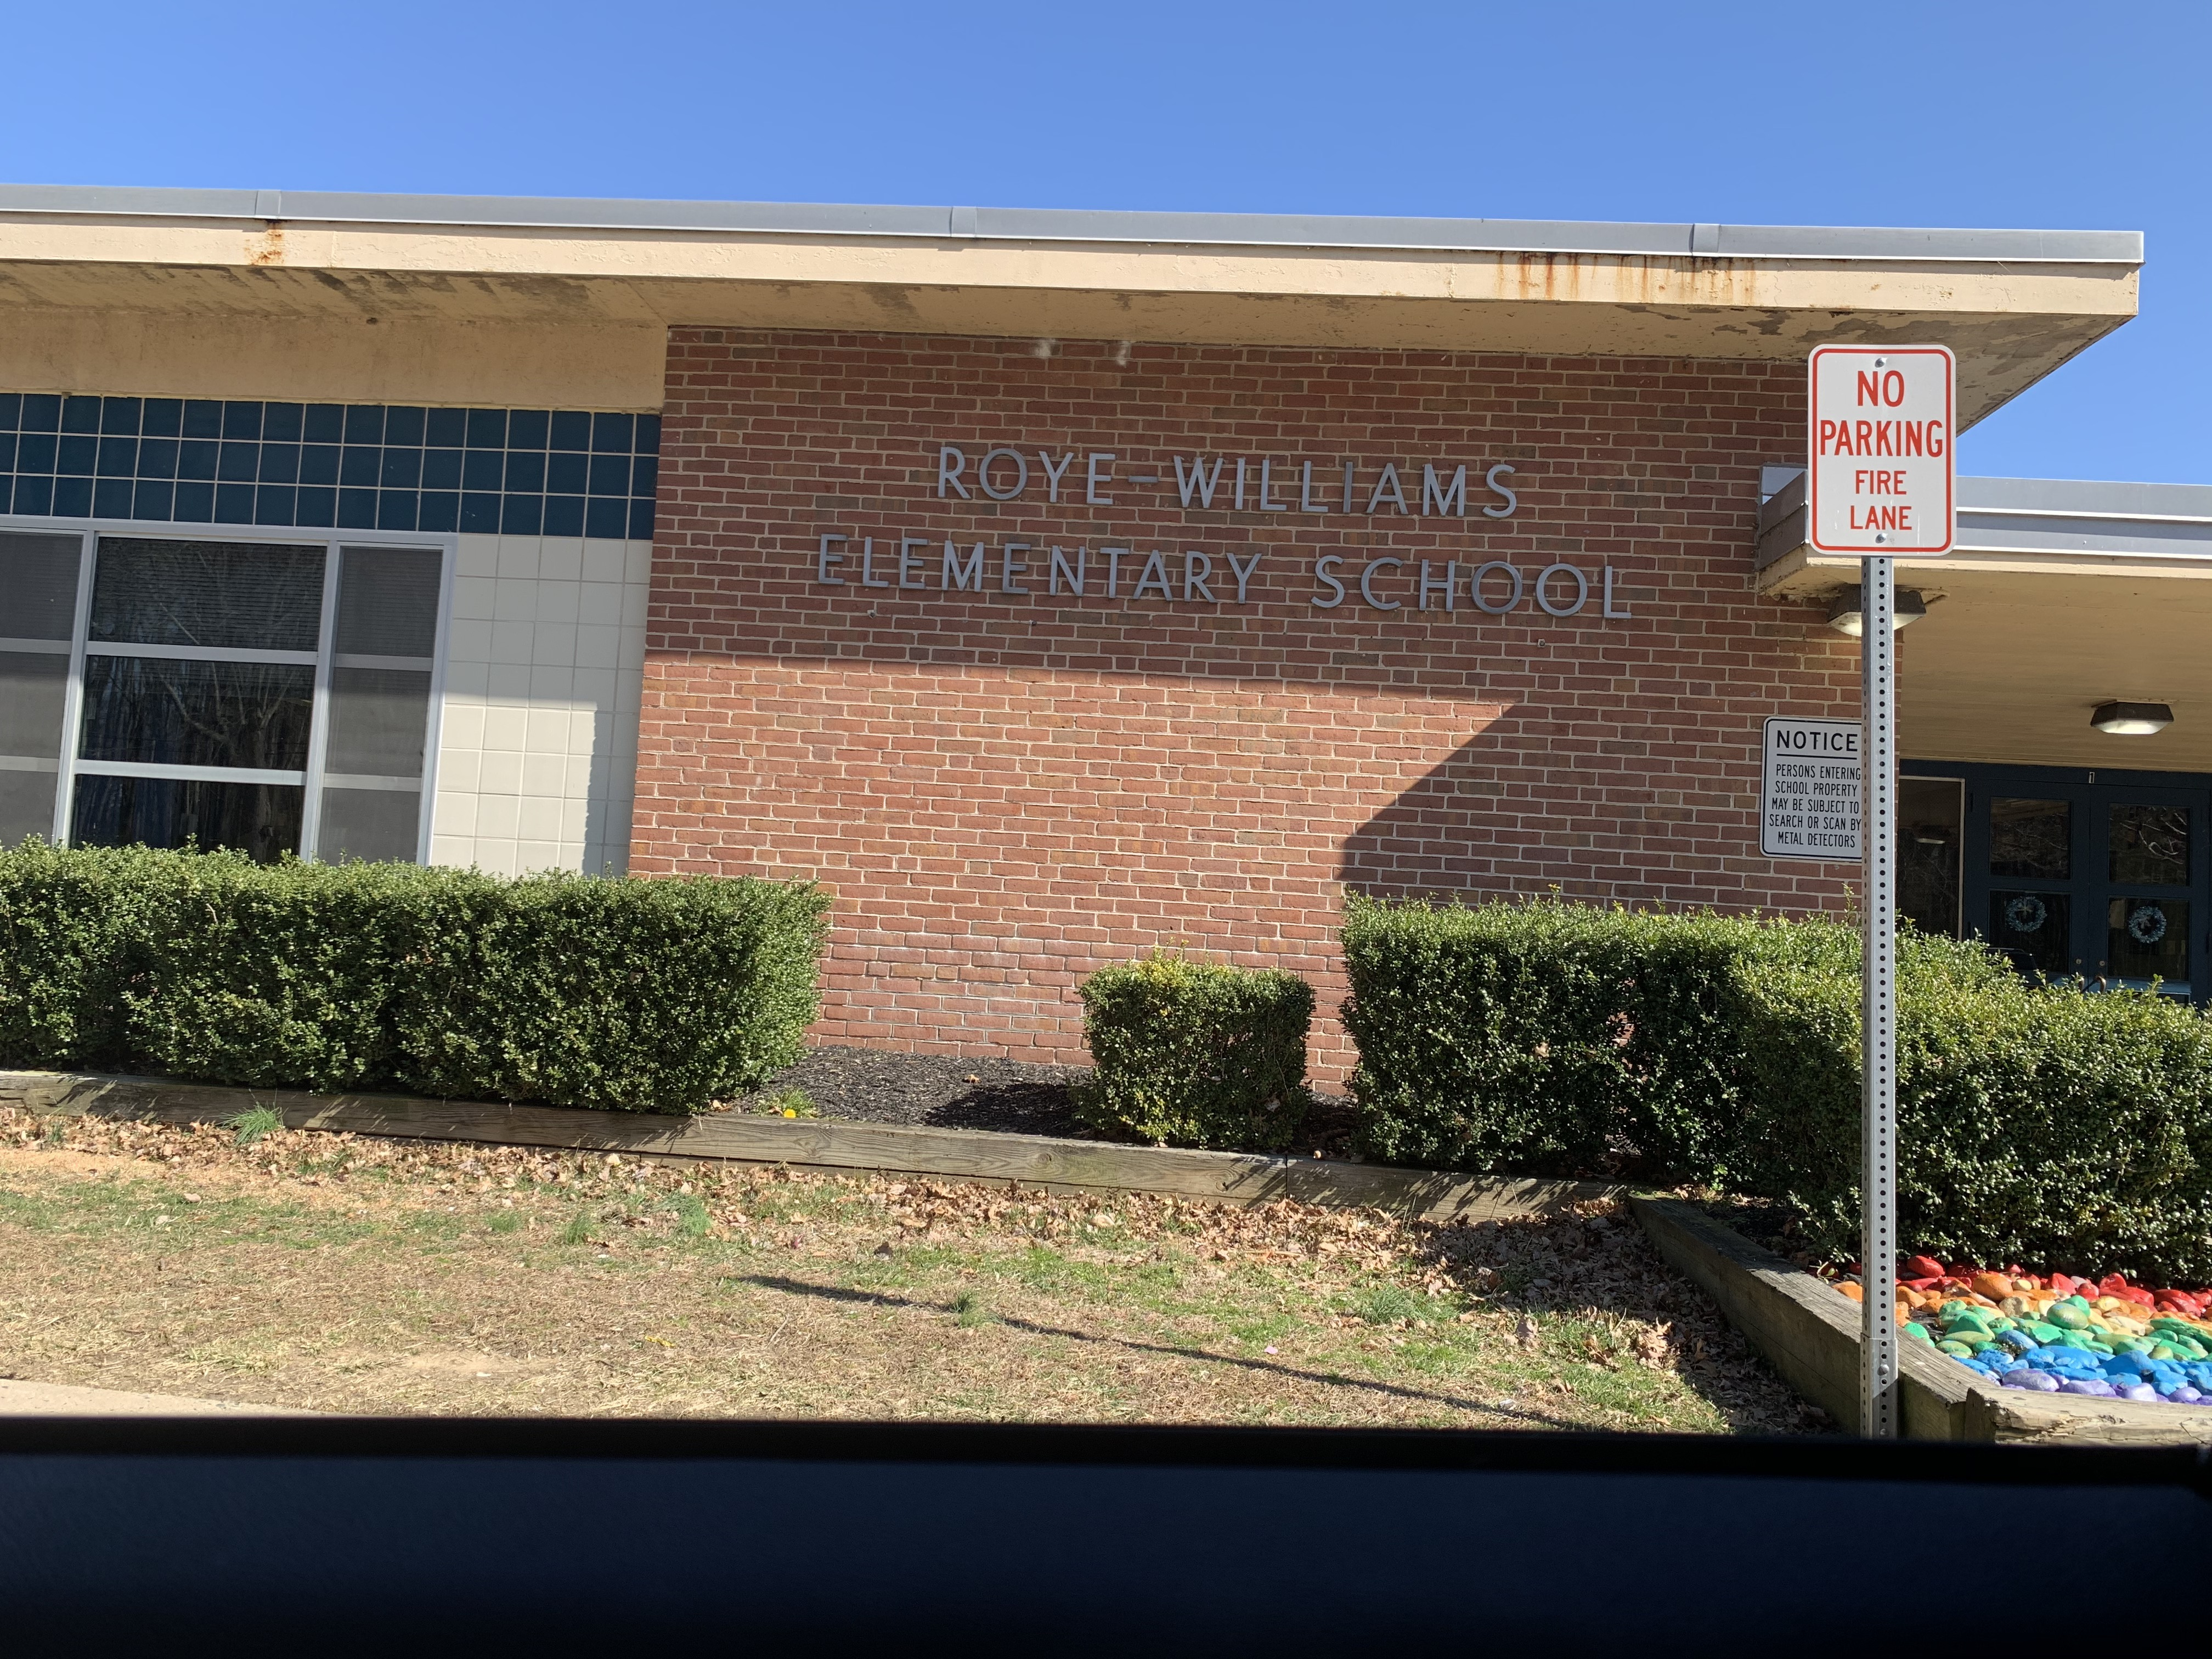 Sign of Roye-Williams Elementary School